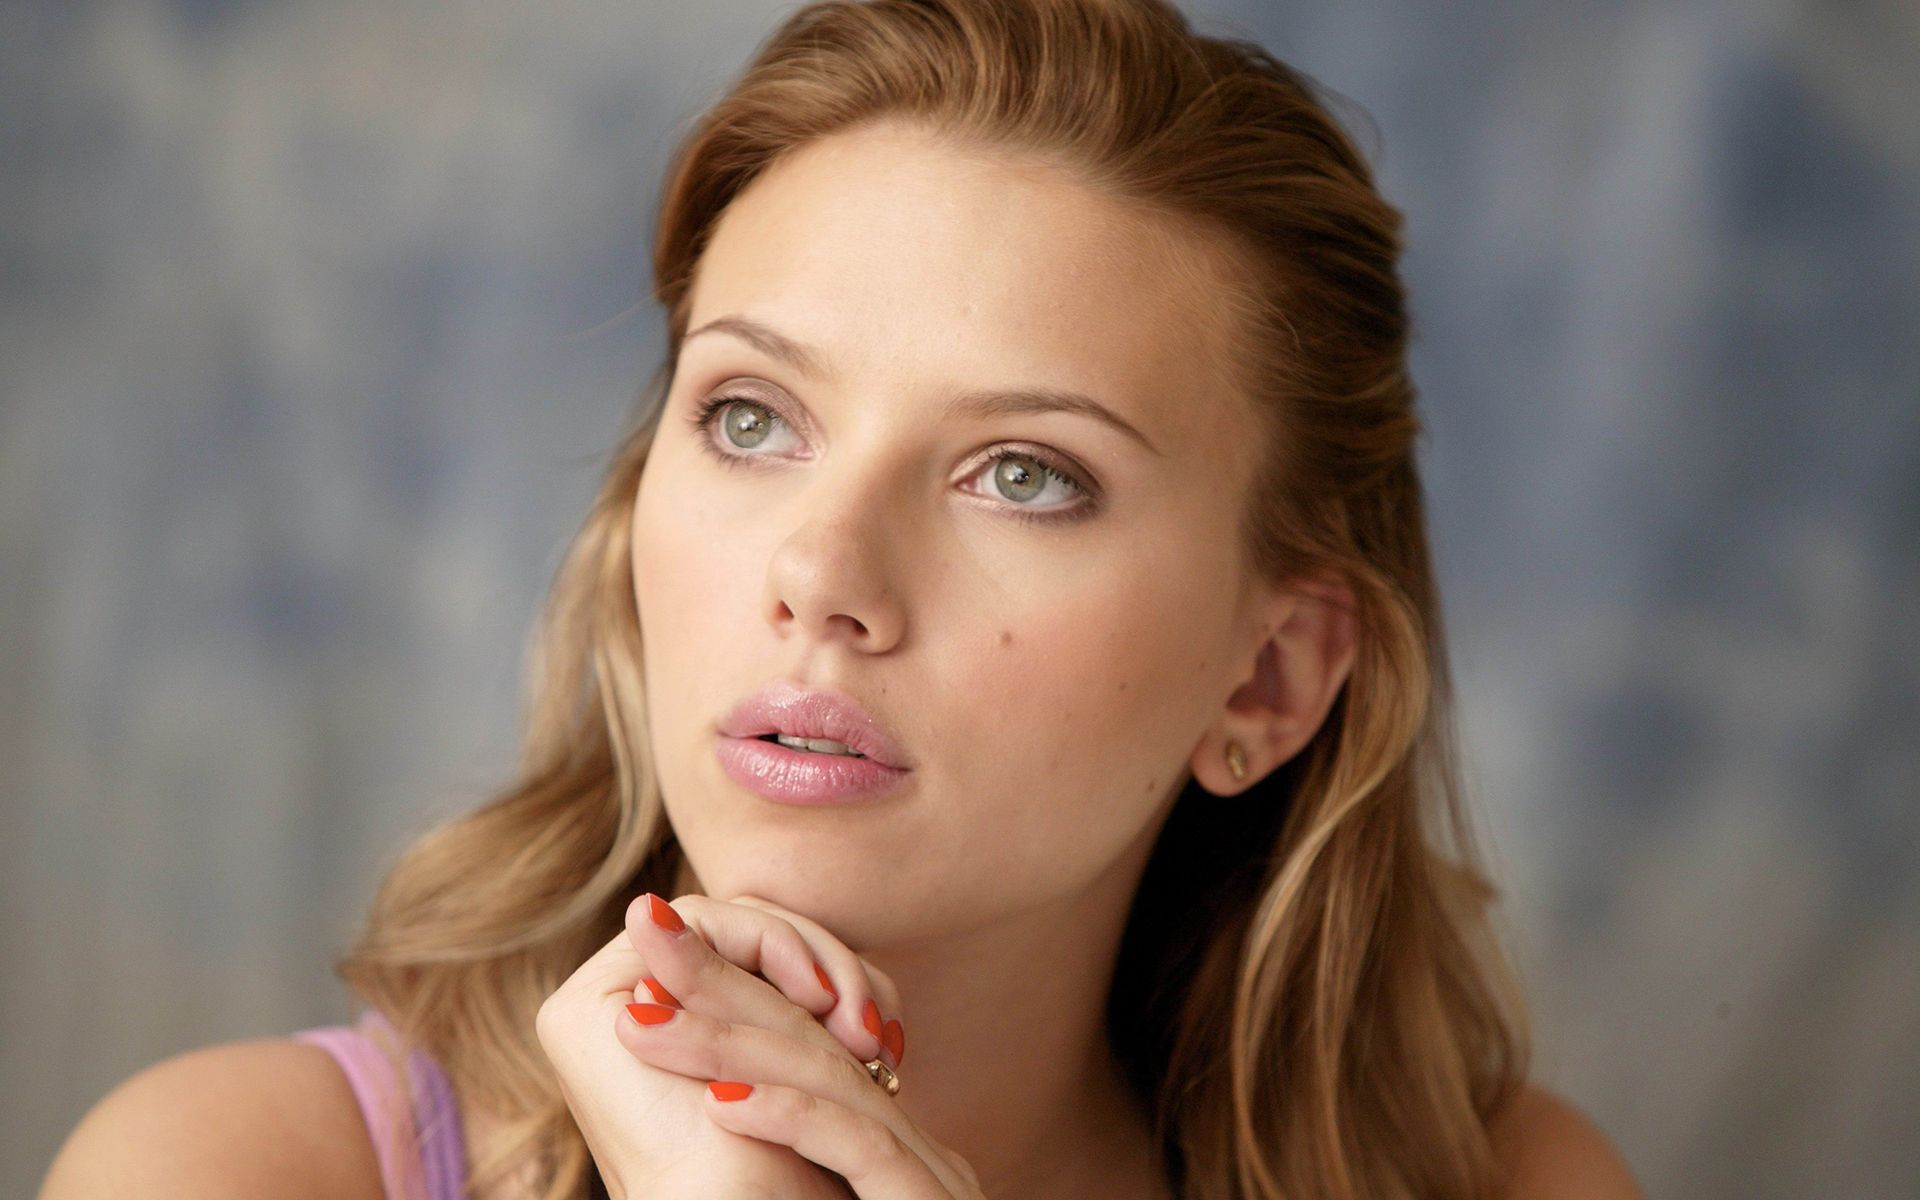 scarlett johansson wallpapers high resolution download